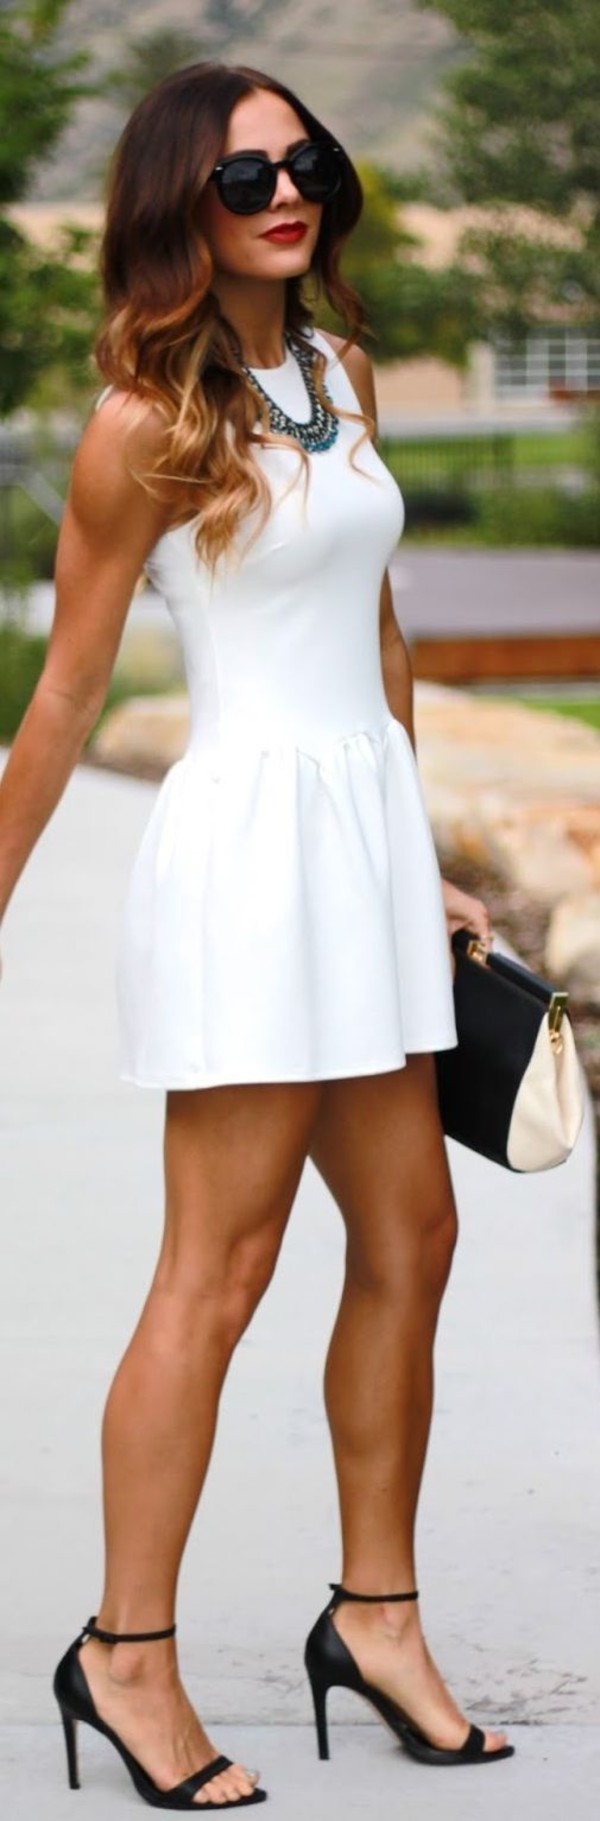 dress clothes sunglasses shoes white white dress short jewels little white dress black shoes black sunglasses style cute dress cute summer peplum elegant high neck fit and flare dress sleevless dress white mini dress beautiful